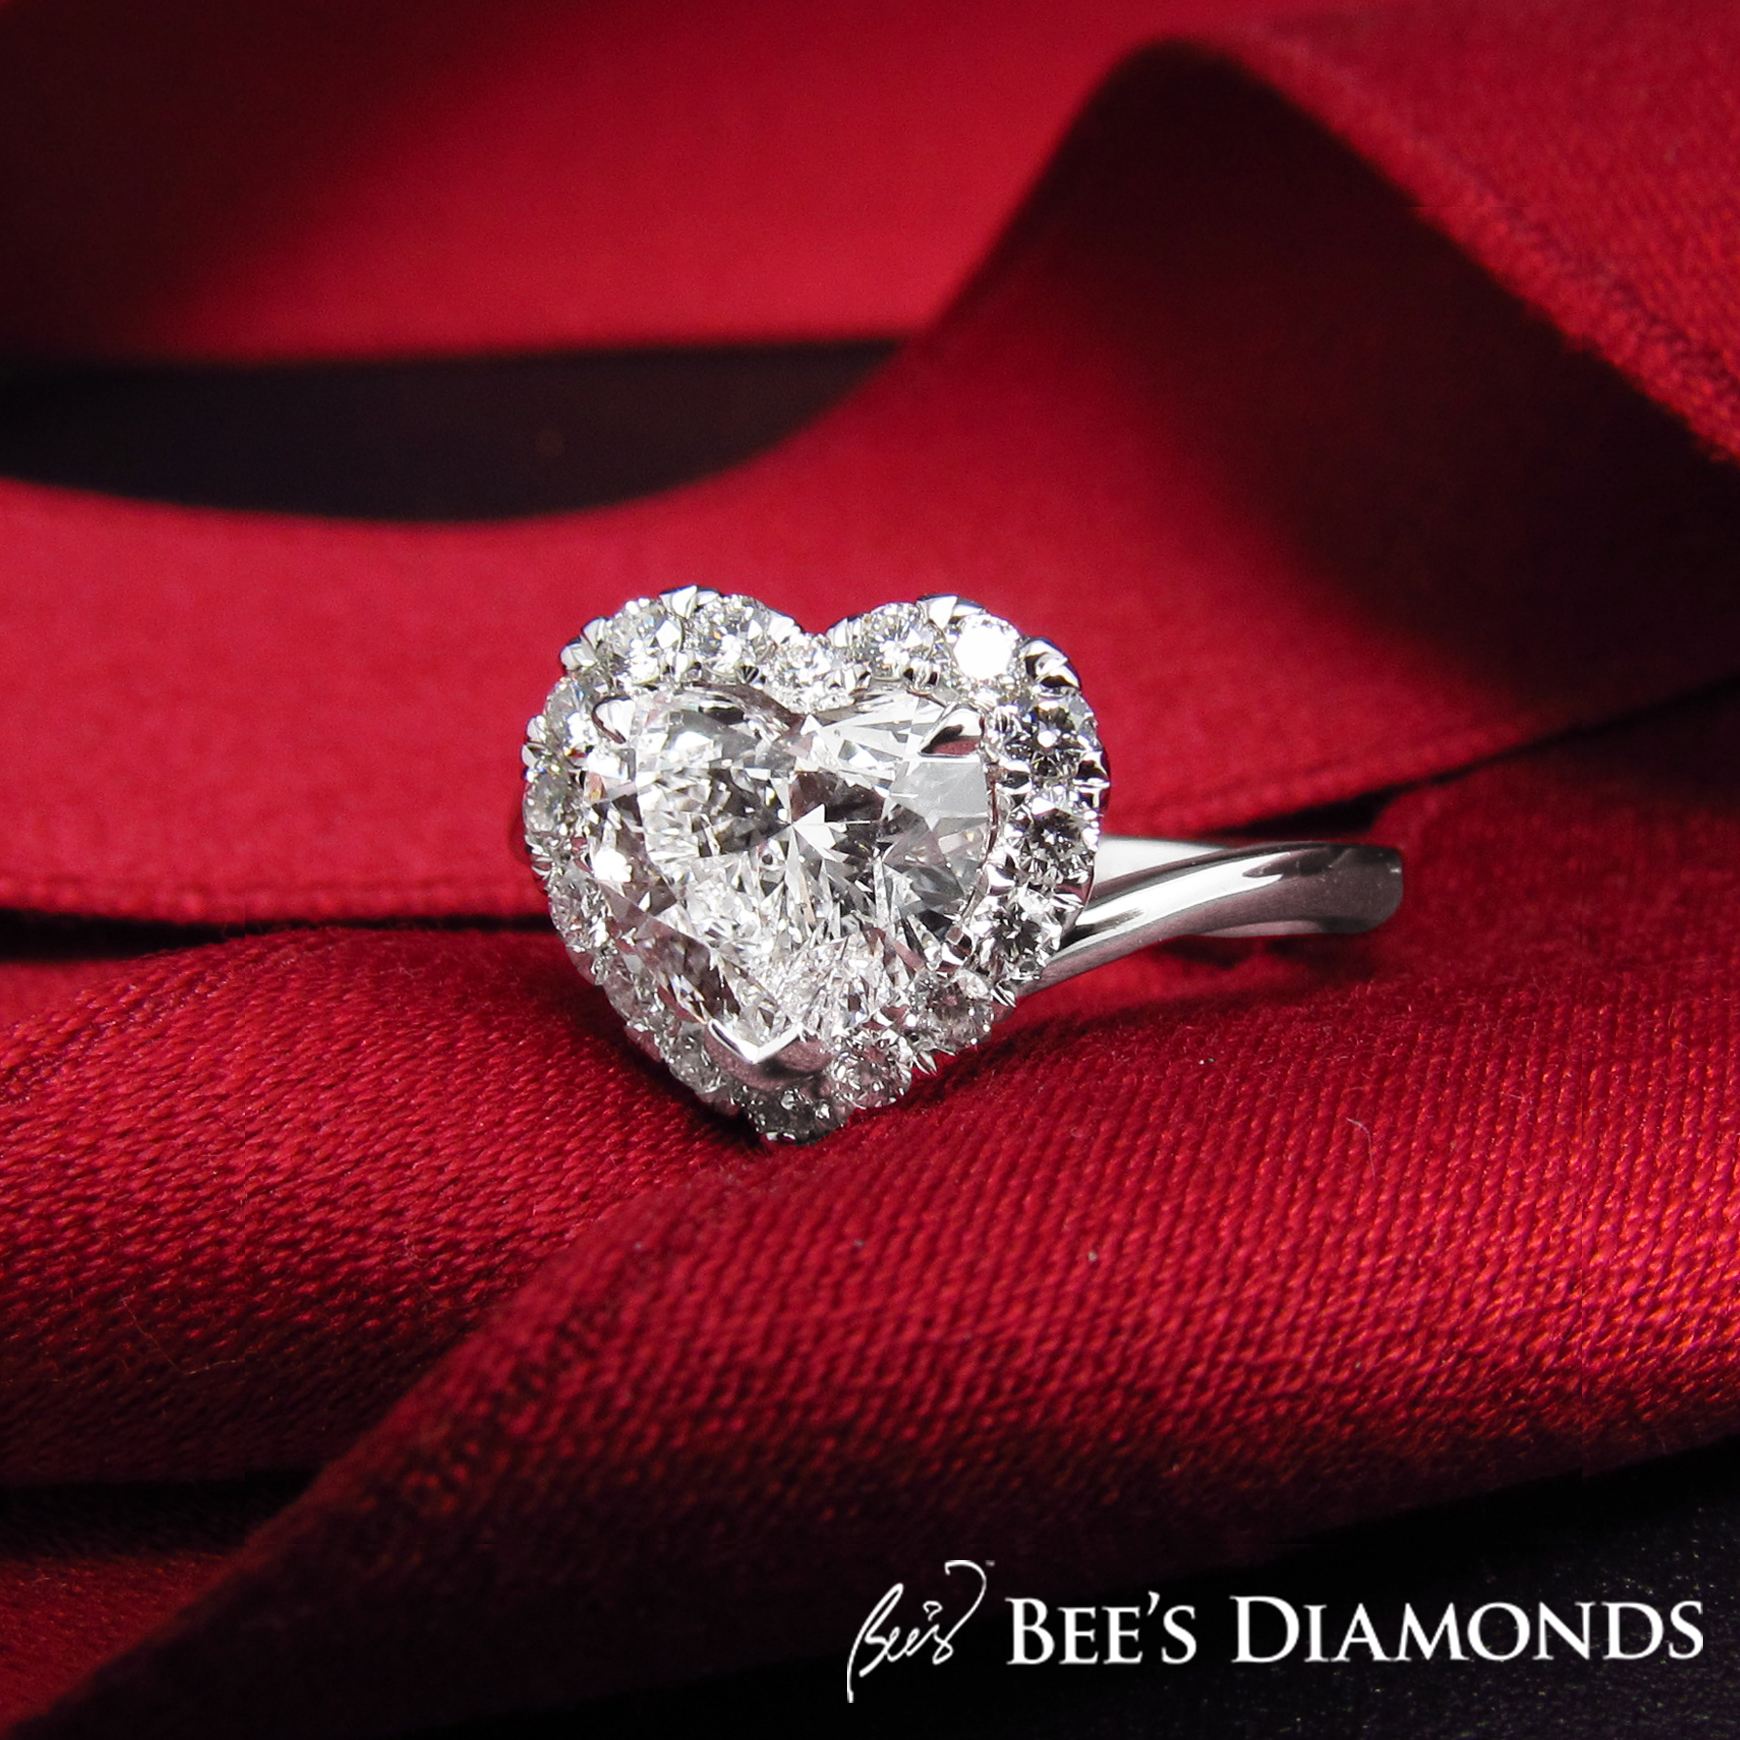 Heart shaped GIA diamond engagement ring | Bee's Diamonds